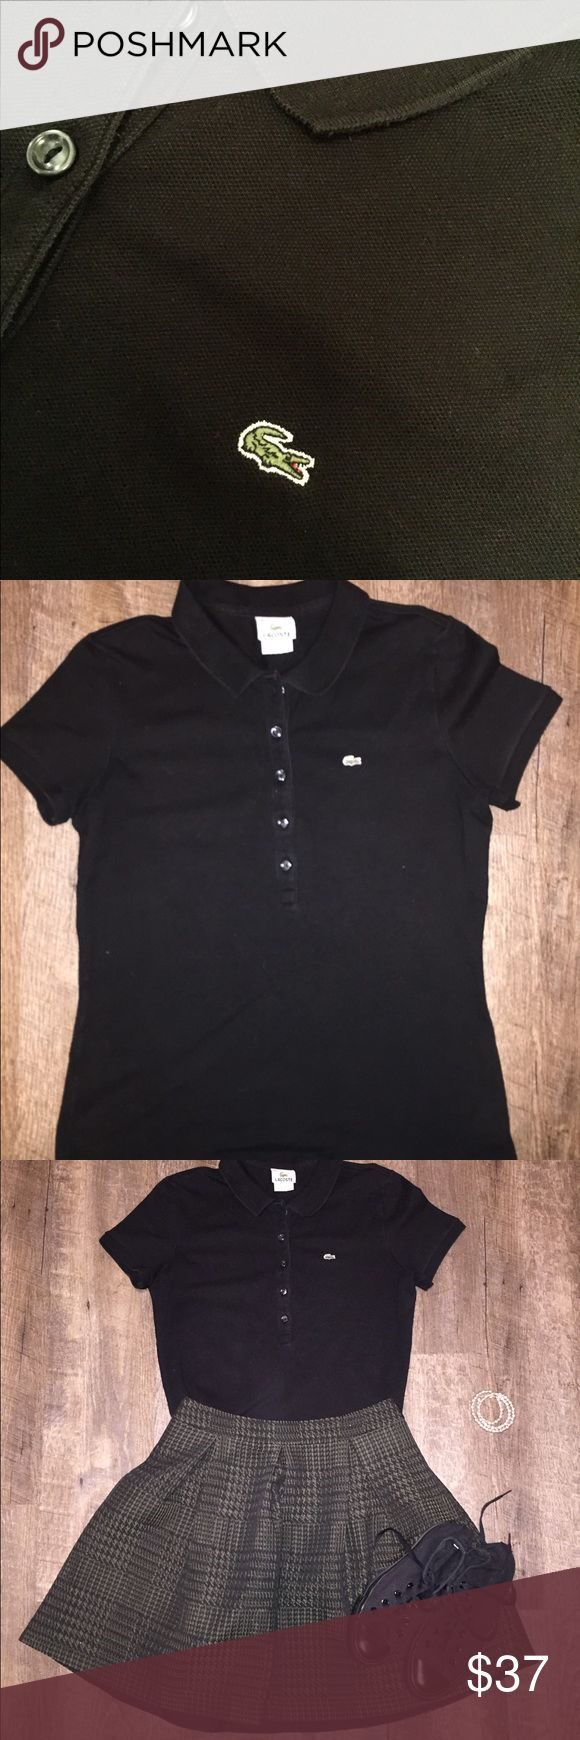 *vintage* Lacoste polo shirt Excellent condition Lacoste brand polo shirt small in size. Wear with jeans, or a fancy skirt (as pictured) (skirt for sale in separate listing) Lacoste Tops Button Down Shirts